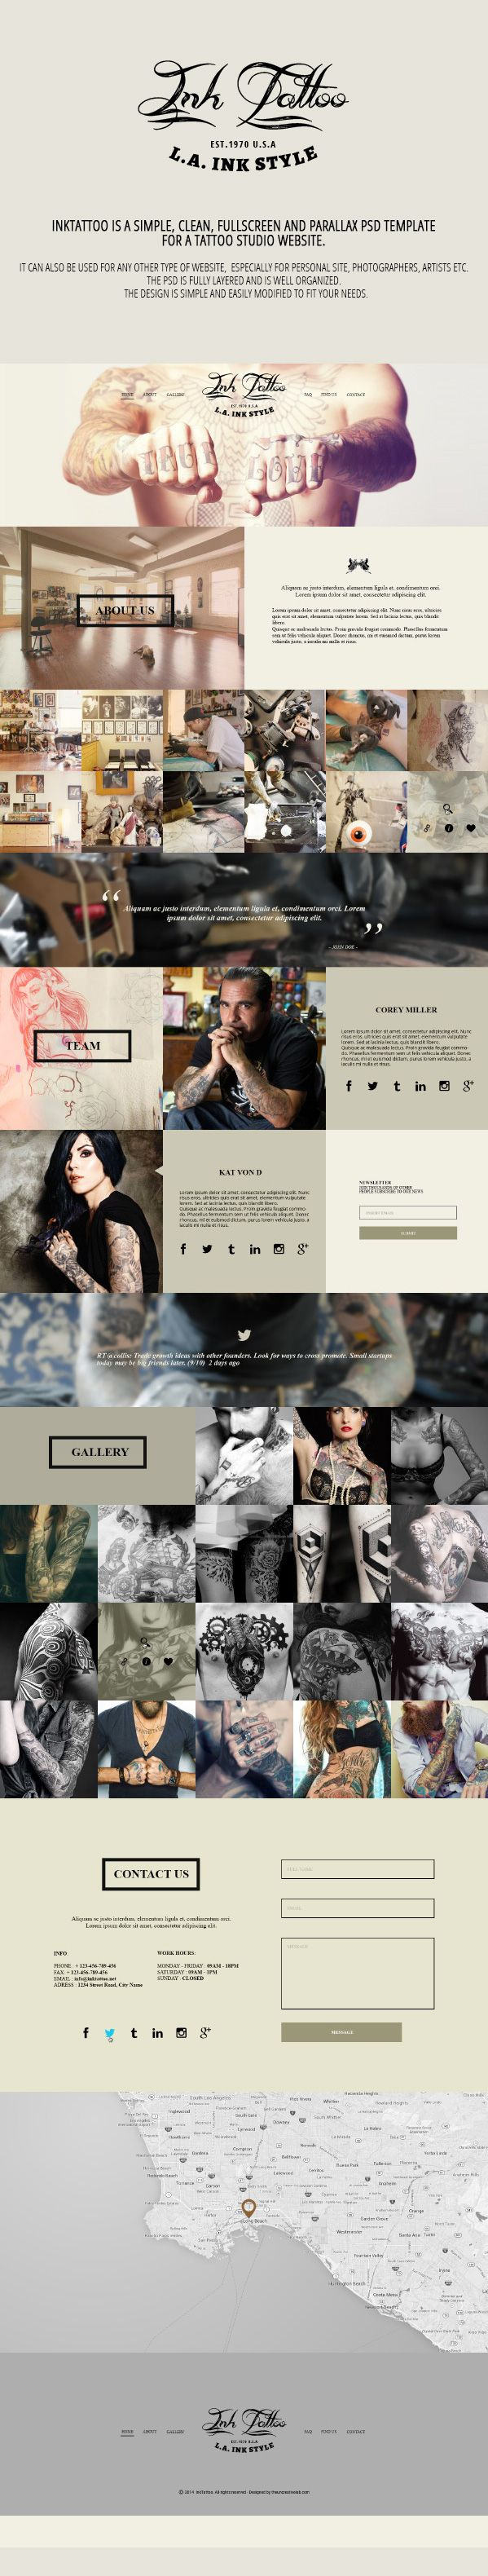 InkTattoo - Free .Psd One Page Template